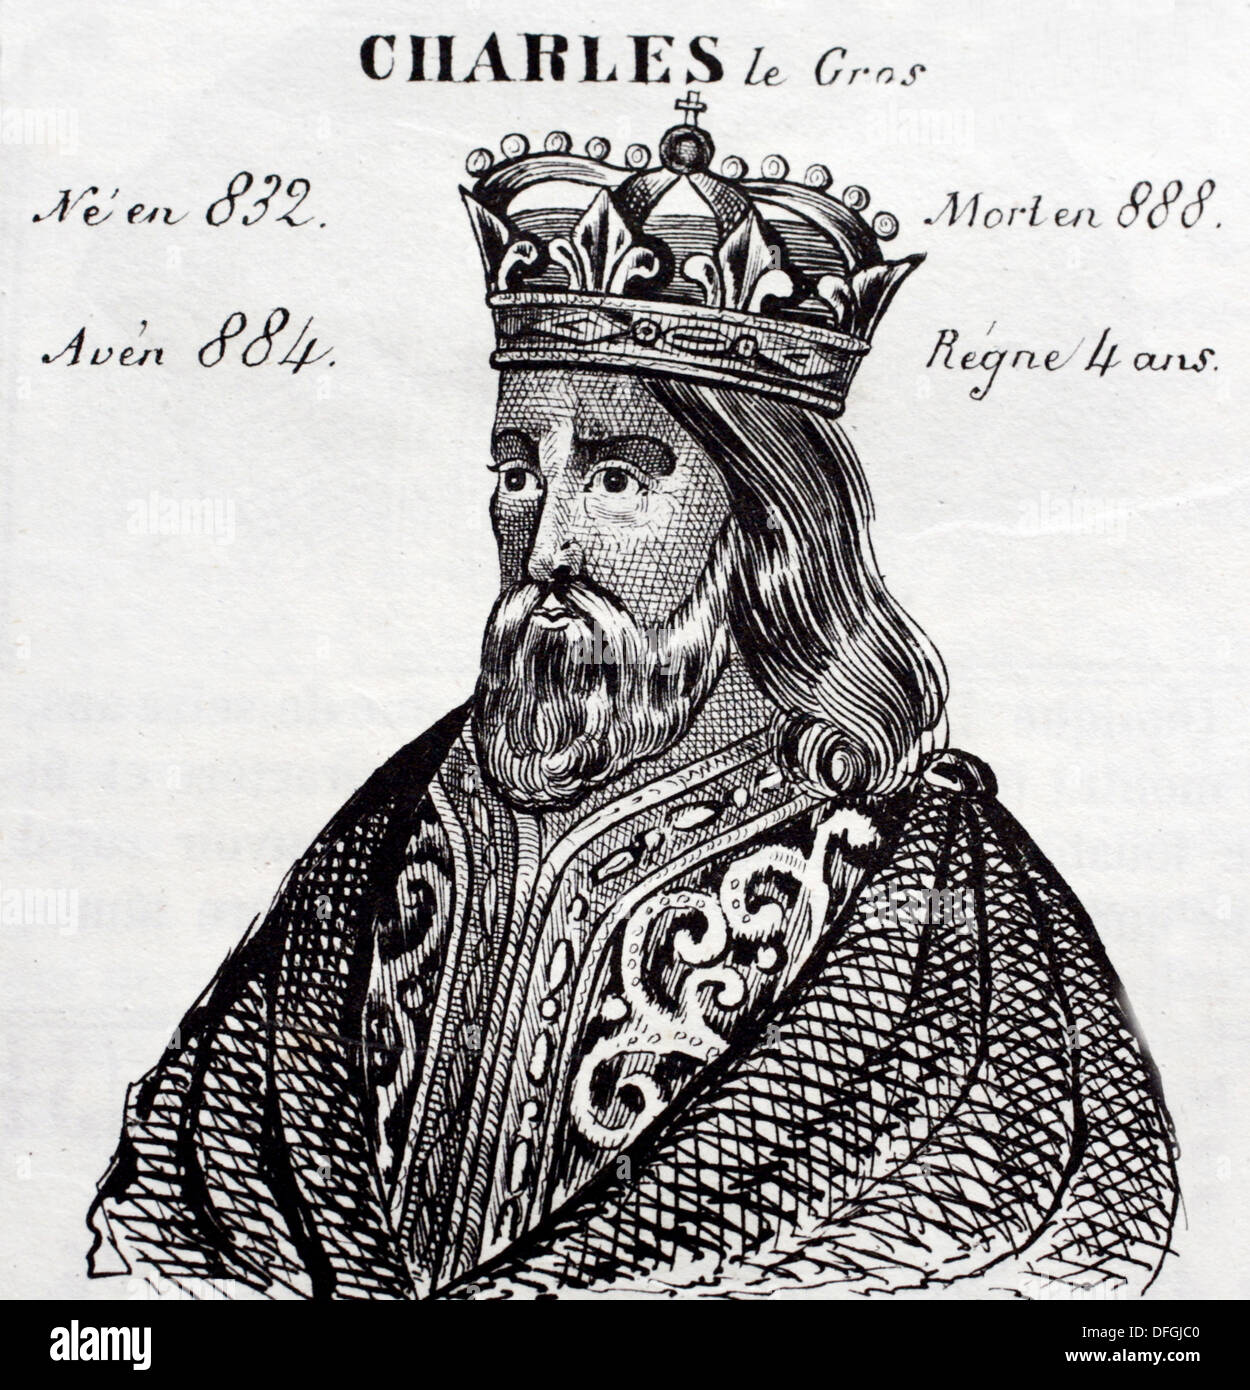 Carlos III el Gordo, king of France from 884 to 888. History of France, by  J.Henry (Paris, 1842) - Stock Image